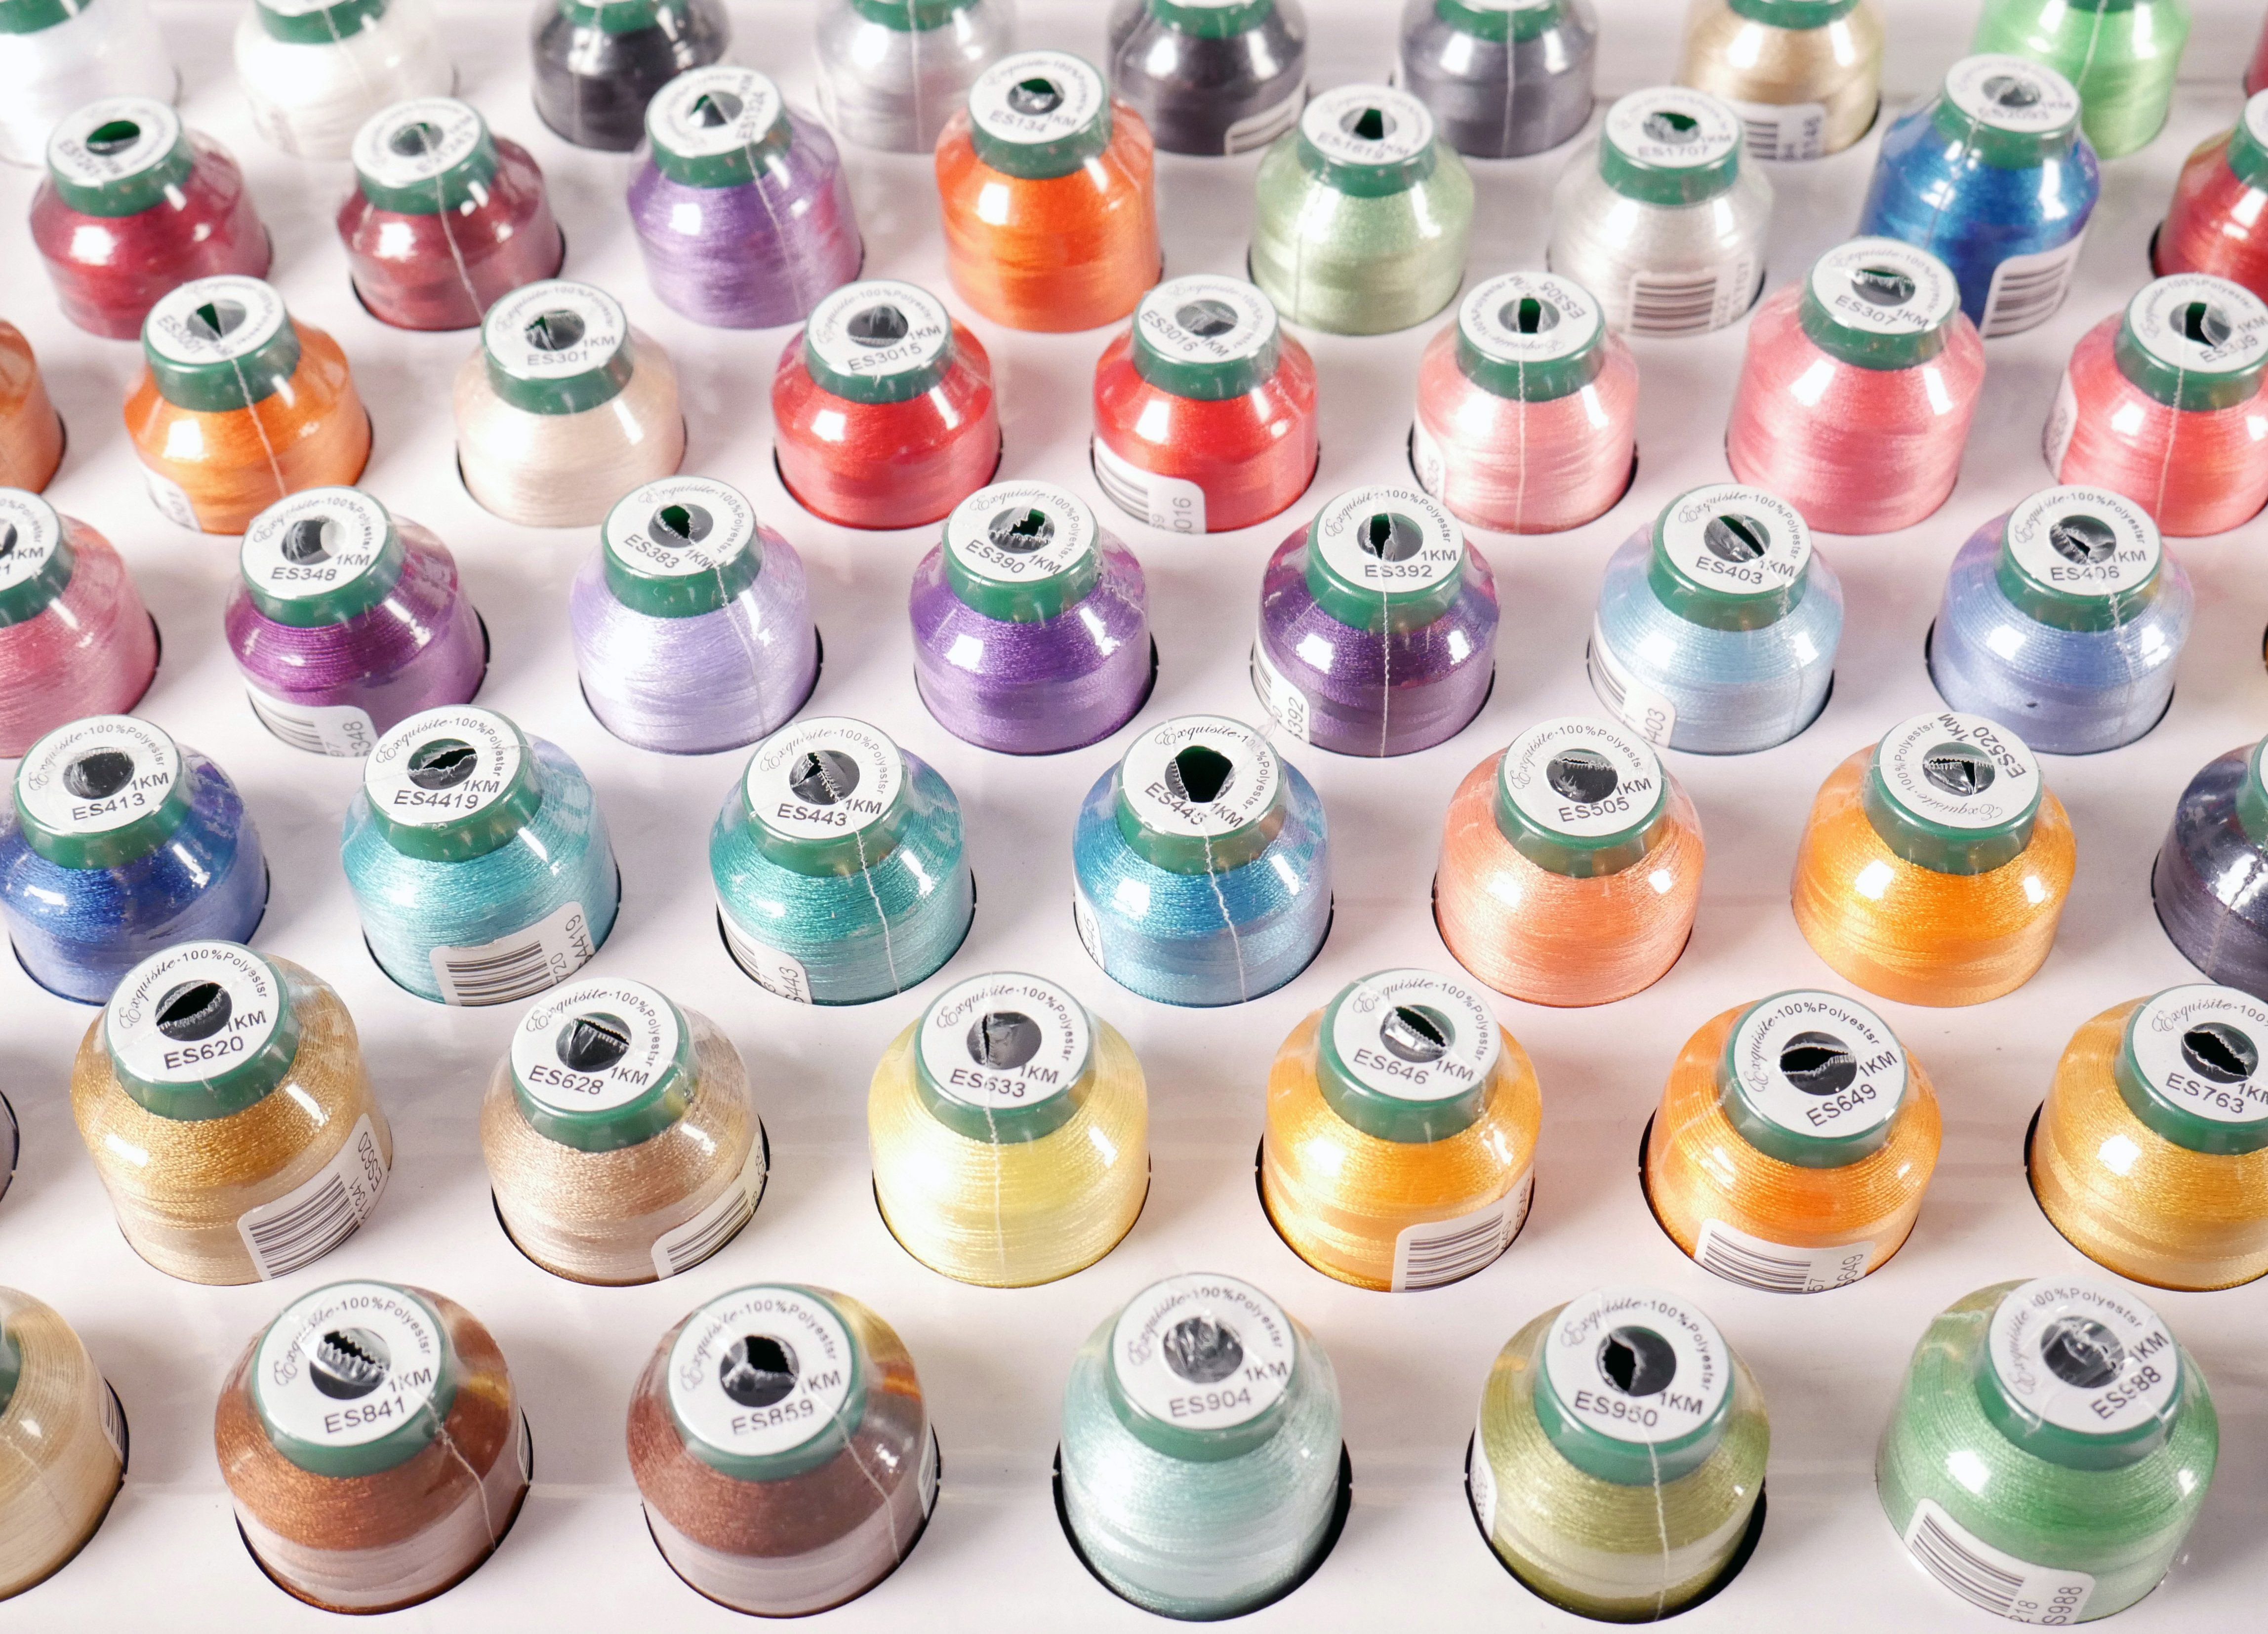 Exquisite Thread Assortment - 60pk 1000 Meter Spools 40 wt • 120/2 Denier Thread • 1000 Meter Grab this beautiful 60 pack of Exquisite 40wt 120/2 denier thread in our most popular colors. Exquisite thread is a high-quality polyester thread at a value price and provides the same brilliant sheen as rayon. The Exquisite brand of polyester threads are colorfast and withstand fading from ultraviolet rays and damage from laundering. Spools are individually shrink wrapped. Colors include: ES010, ES015,